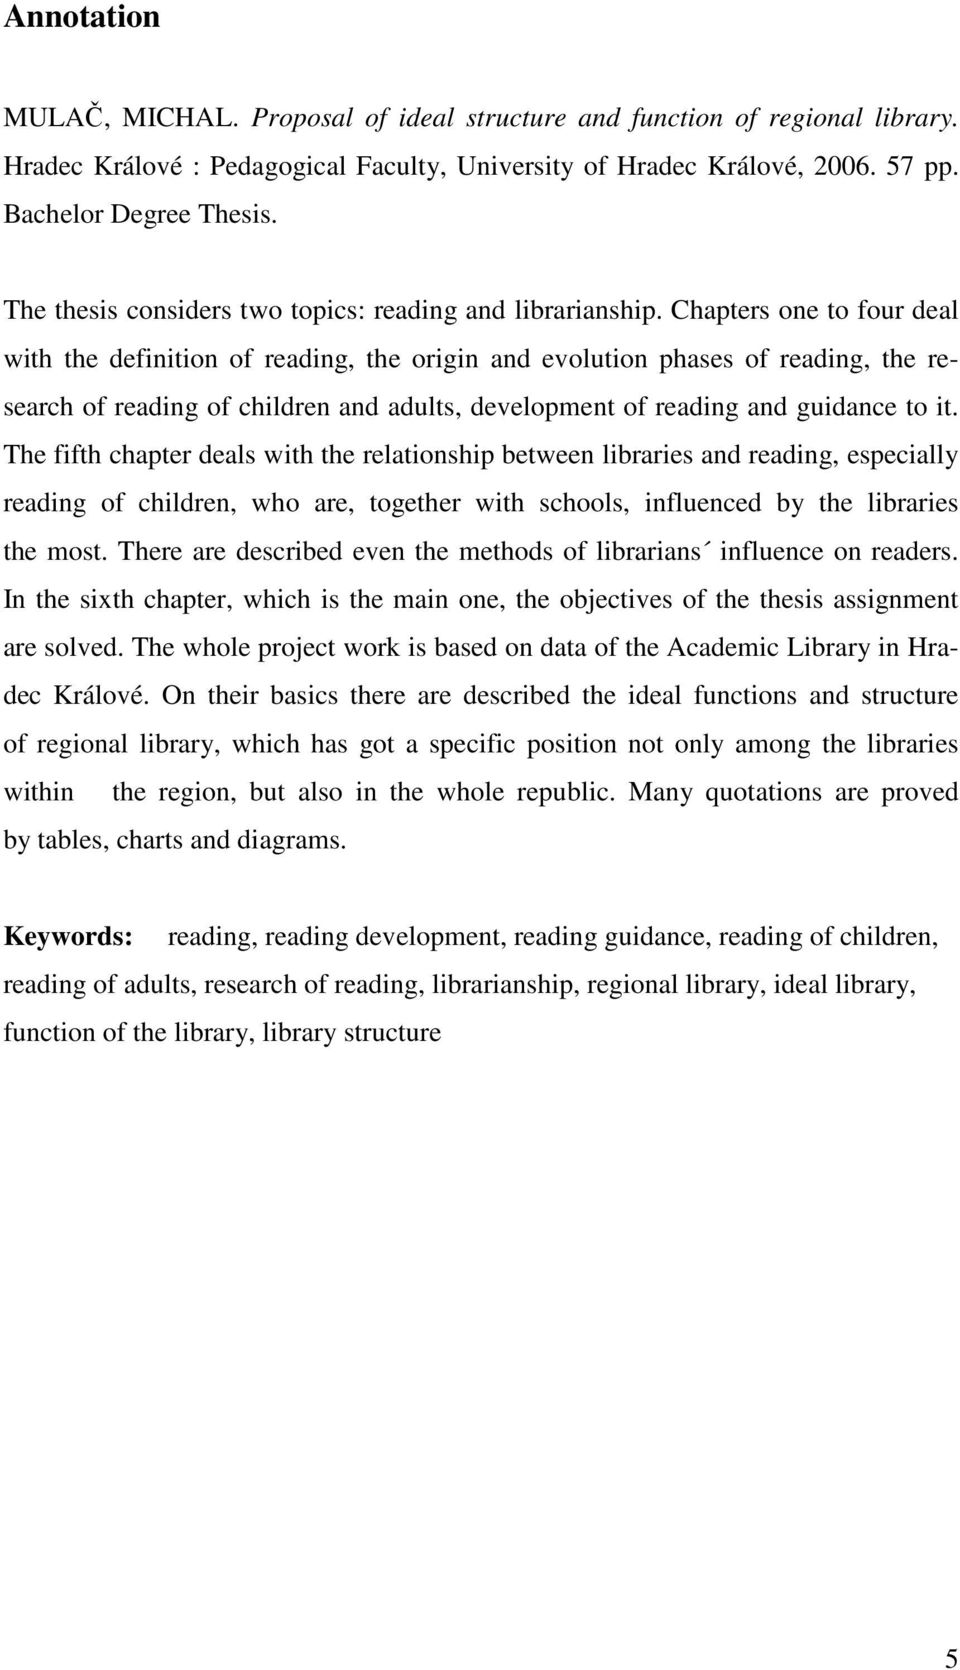 Chapters one to four deal with the definition of reading, the origin and evolution phases of reading, the research of reading of children and adults, development of reading and guidance to it.